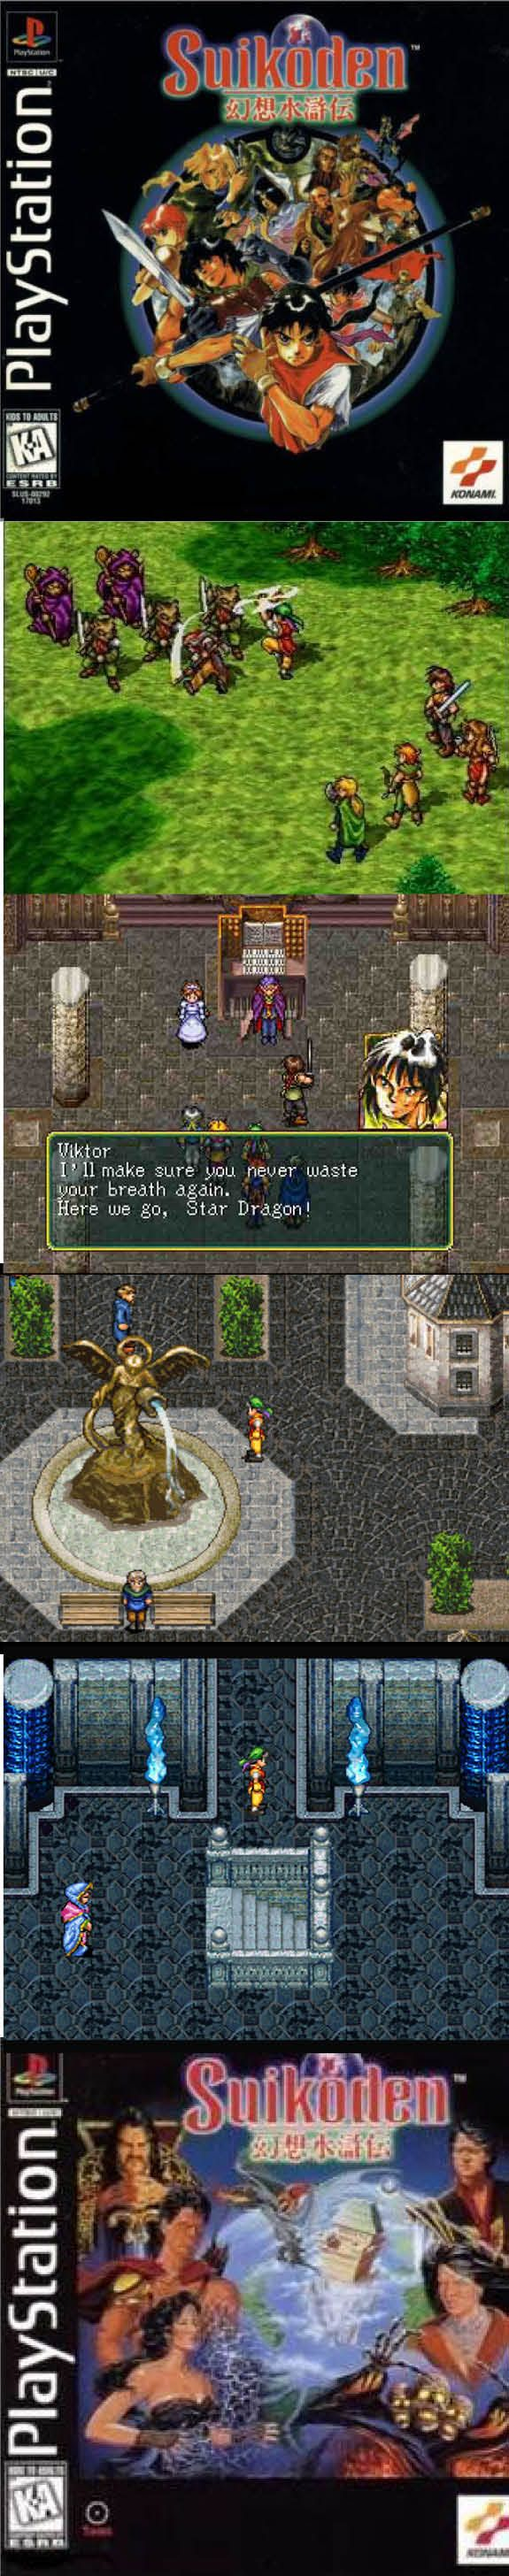 #RetroGamer The #PS1 was released this week and without it we would not have #Suikoden!  http://www.levelgamingground.com/suikoden-review.html